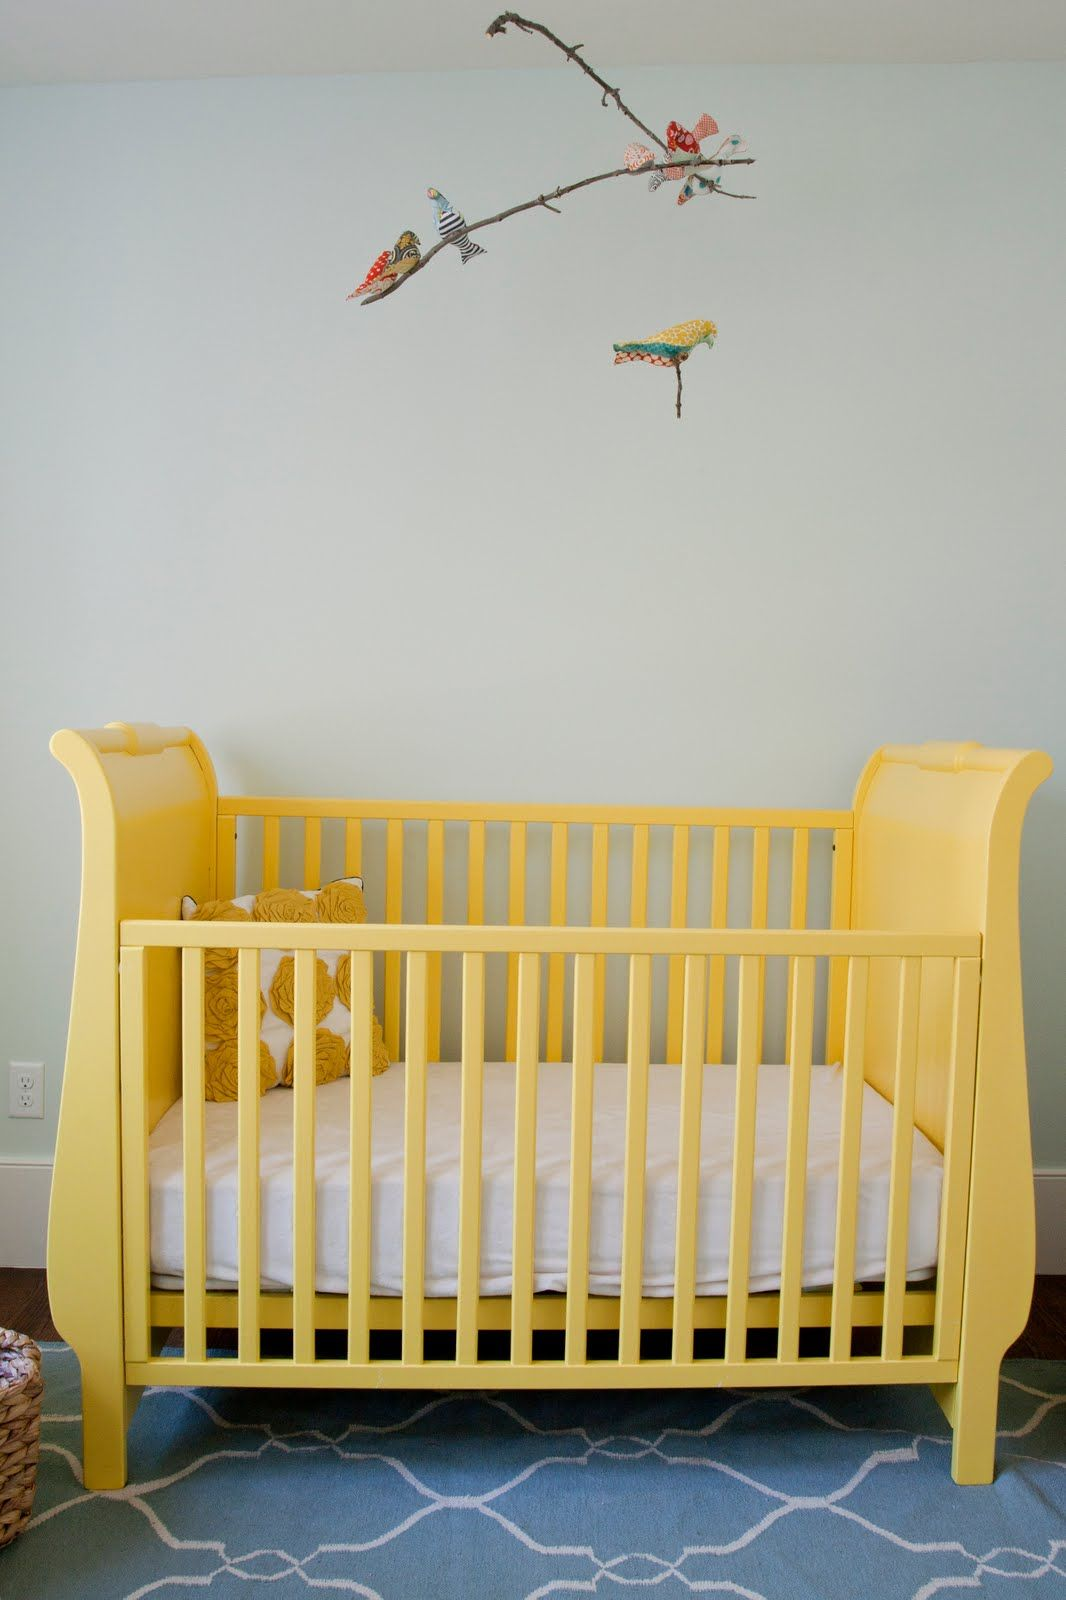 Paint The Crib With Non Toxic, VOC Free Paint Before Baby Number 2